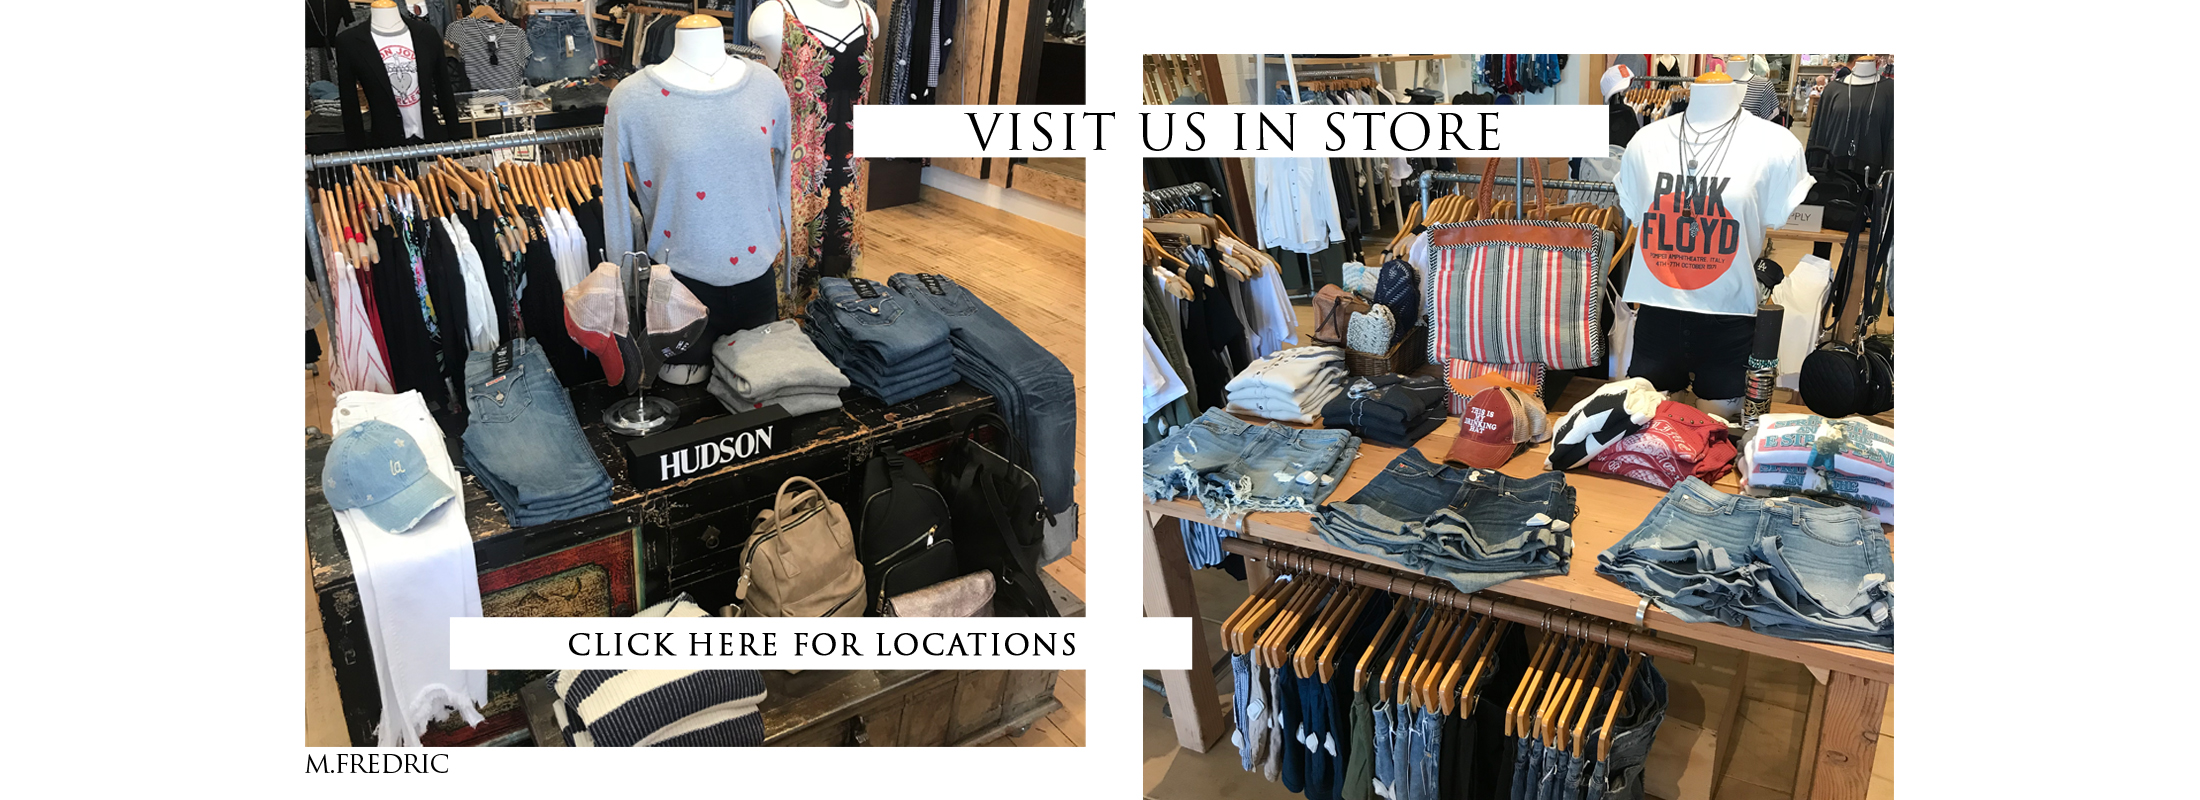 VISIT US IN STORES CLICK HERE FOR LOCATIONS